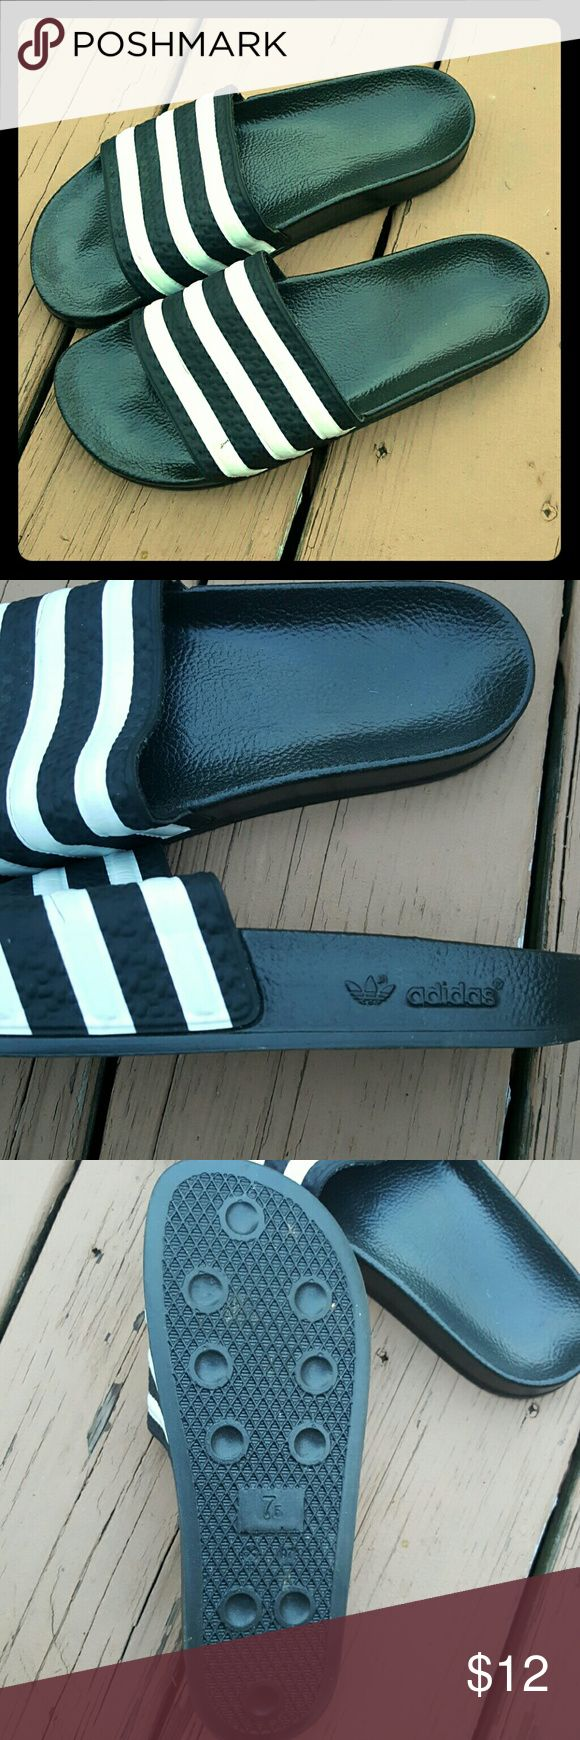 Adidas Adilette Sandals Adidas Adilette Sandals. Great for swimmers and athletes. Good condition! Only worn once or twice. Adidas Shoes Sandals